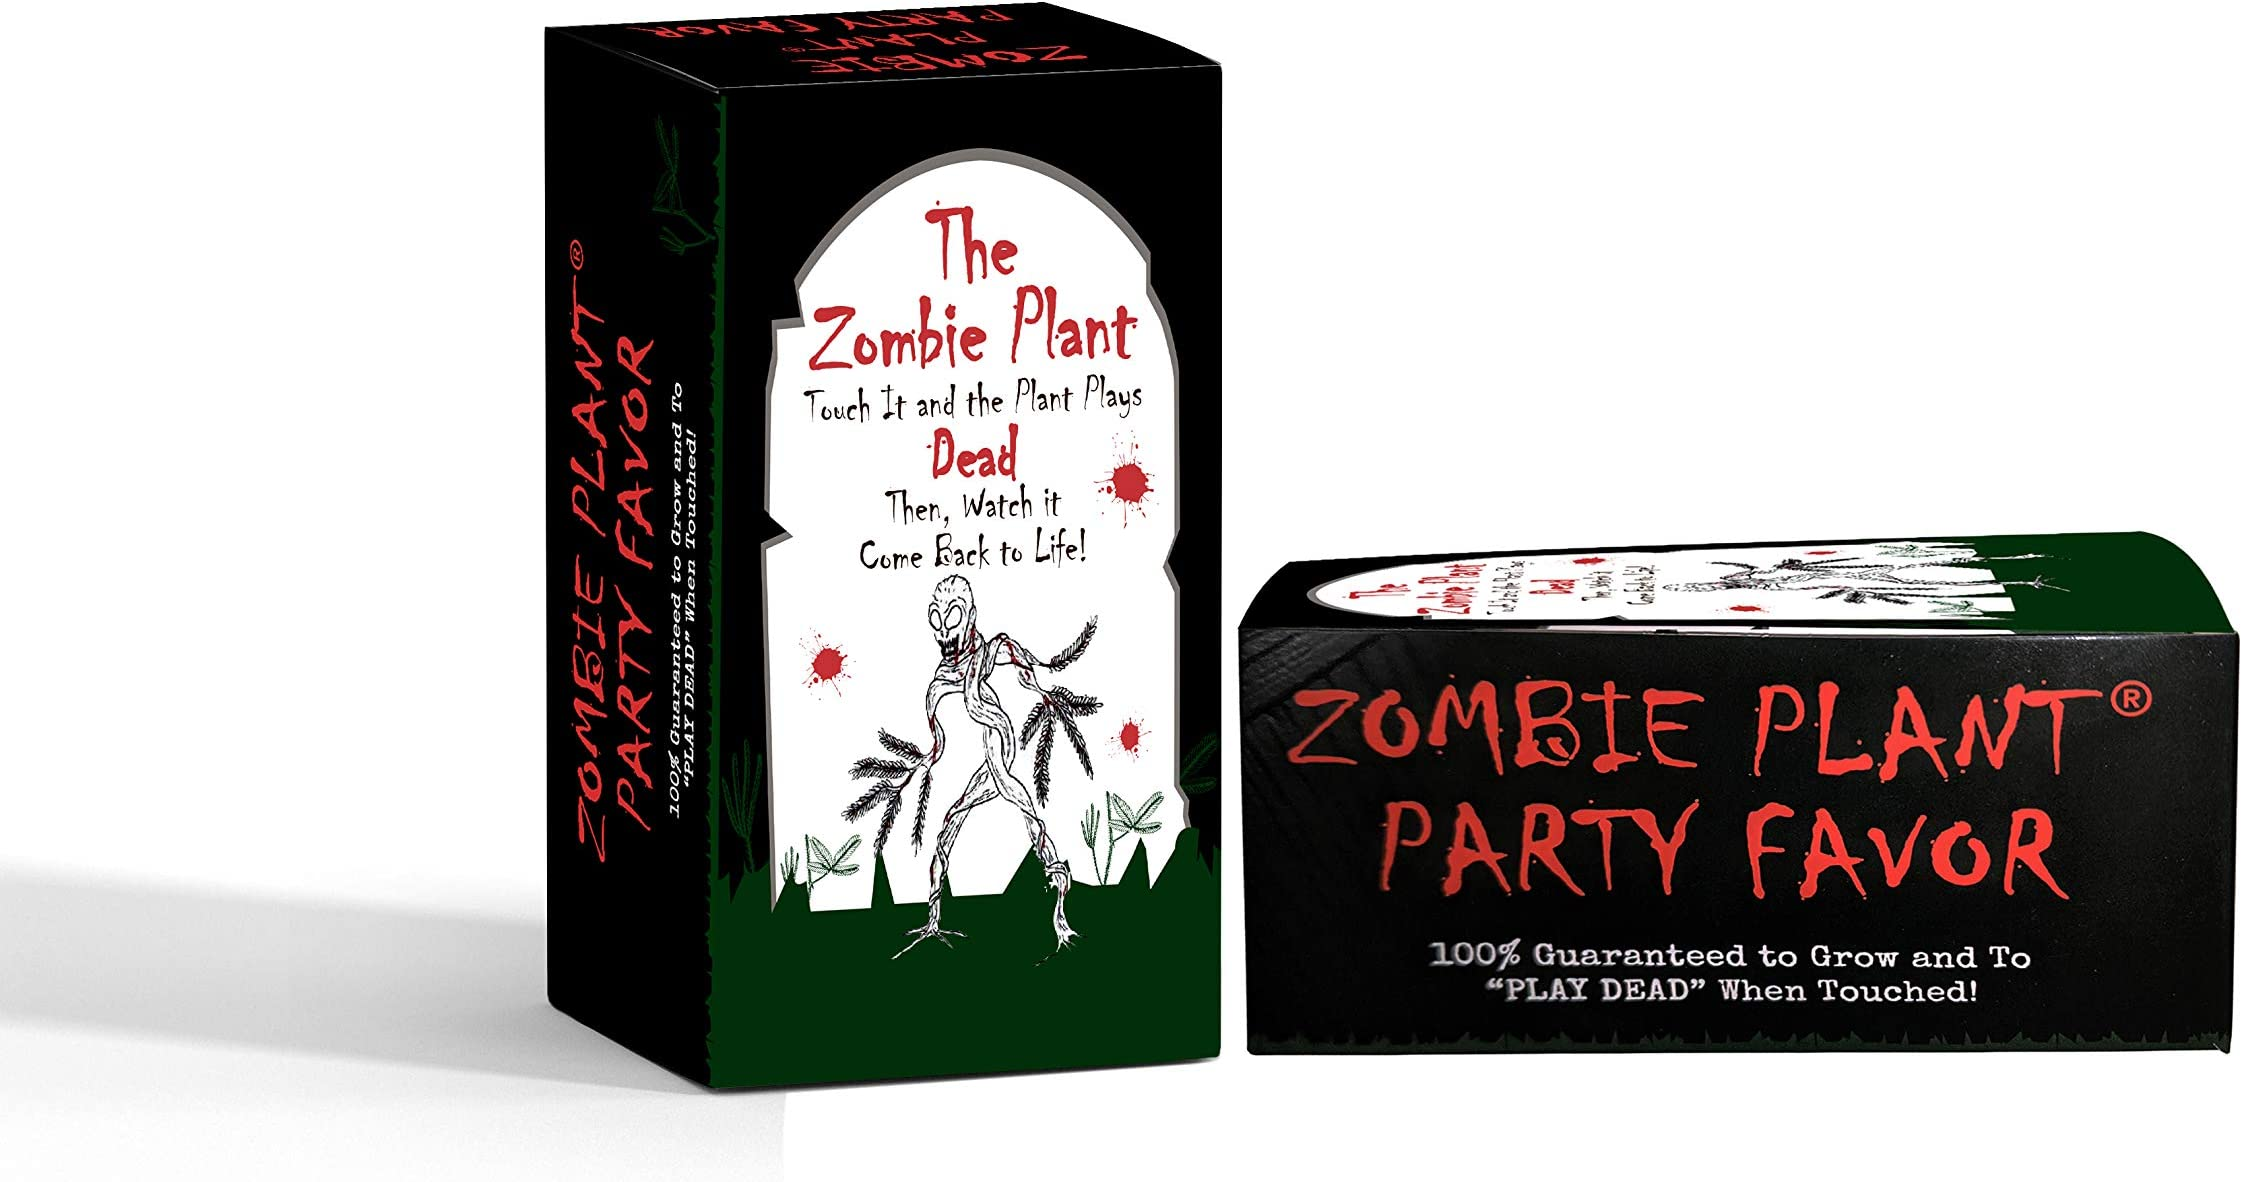 """Zombie Plant Party Favors (2) or Birthday Gift Giveaways - """"Plays Dead"""" When Touched. Includes Soil, Seeds & Mini Flower Pot. Supplies for Zombie Themed Event. Plant it as a Easter Party Activity"""